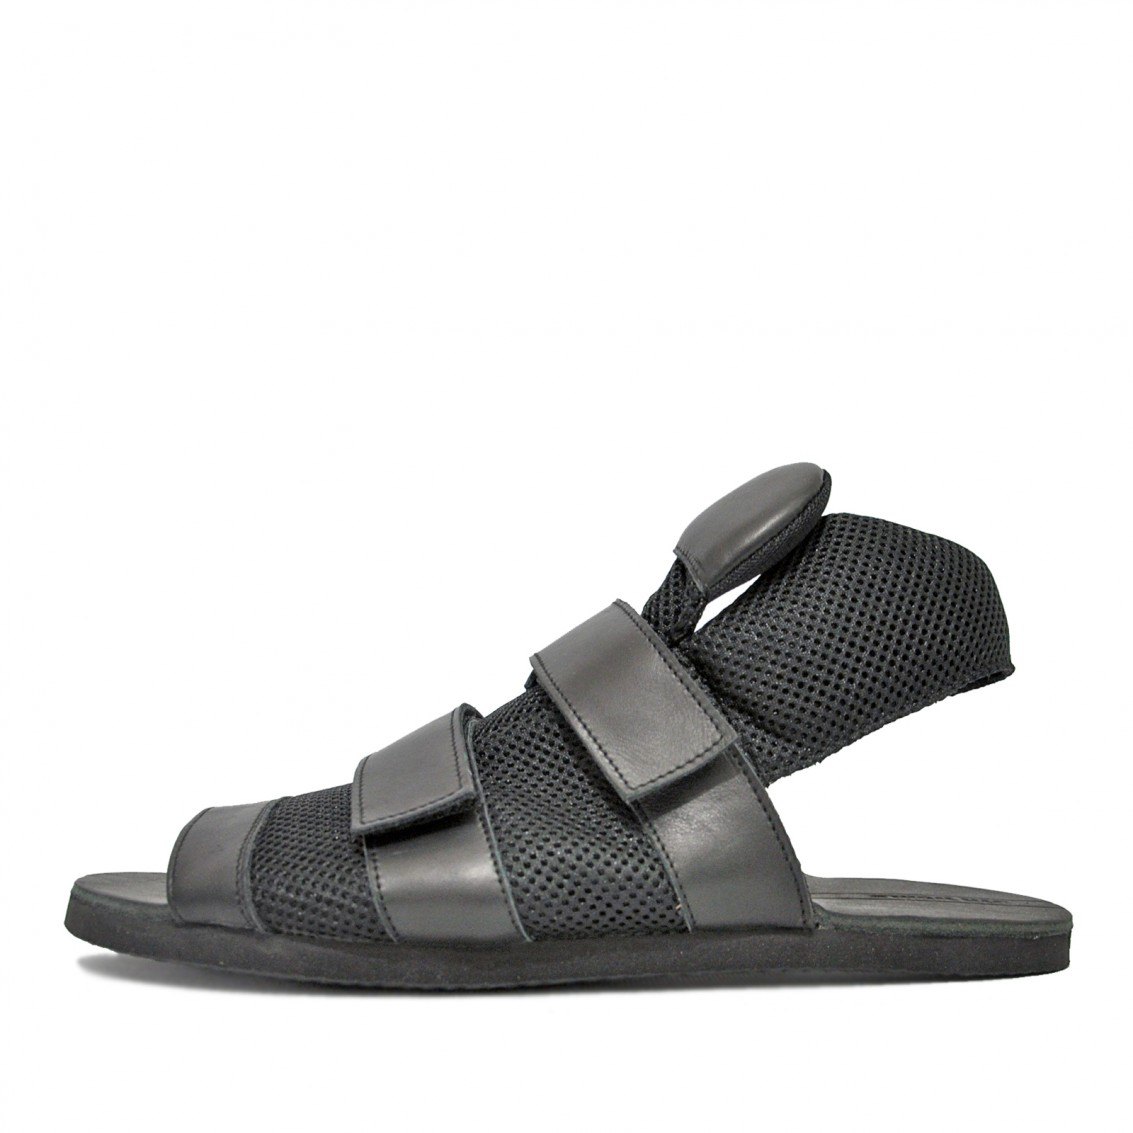 Men's asymmetric  sandals. Conceptual model.